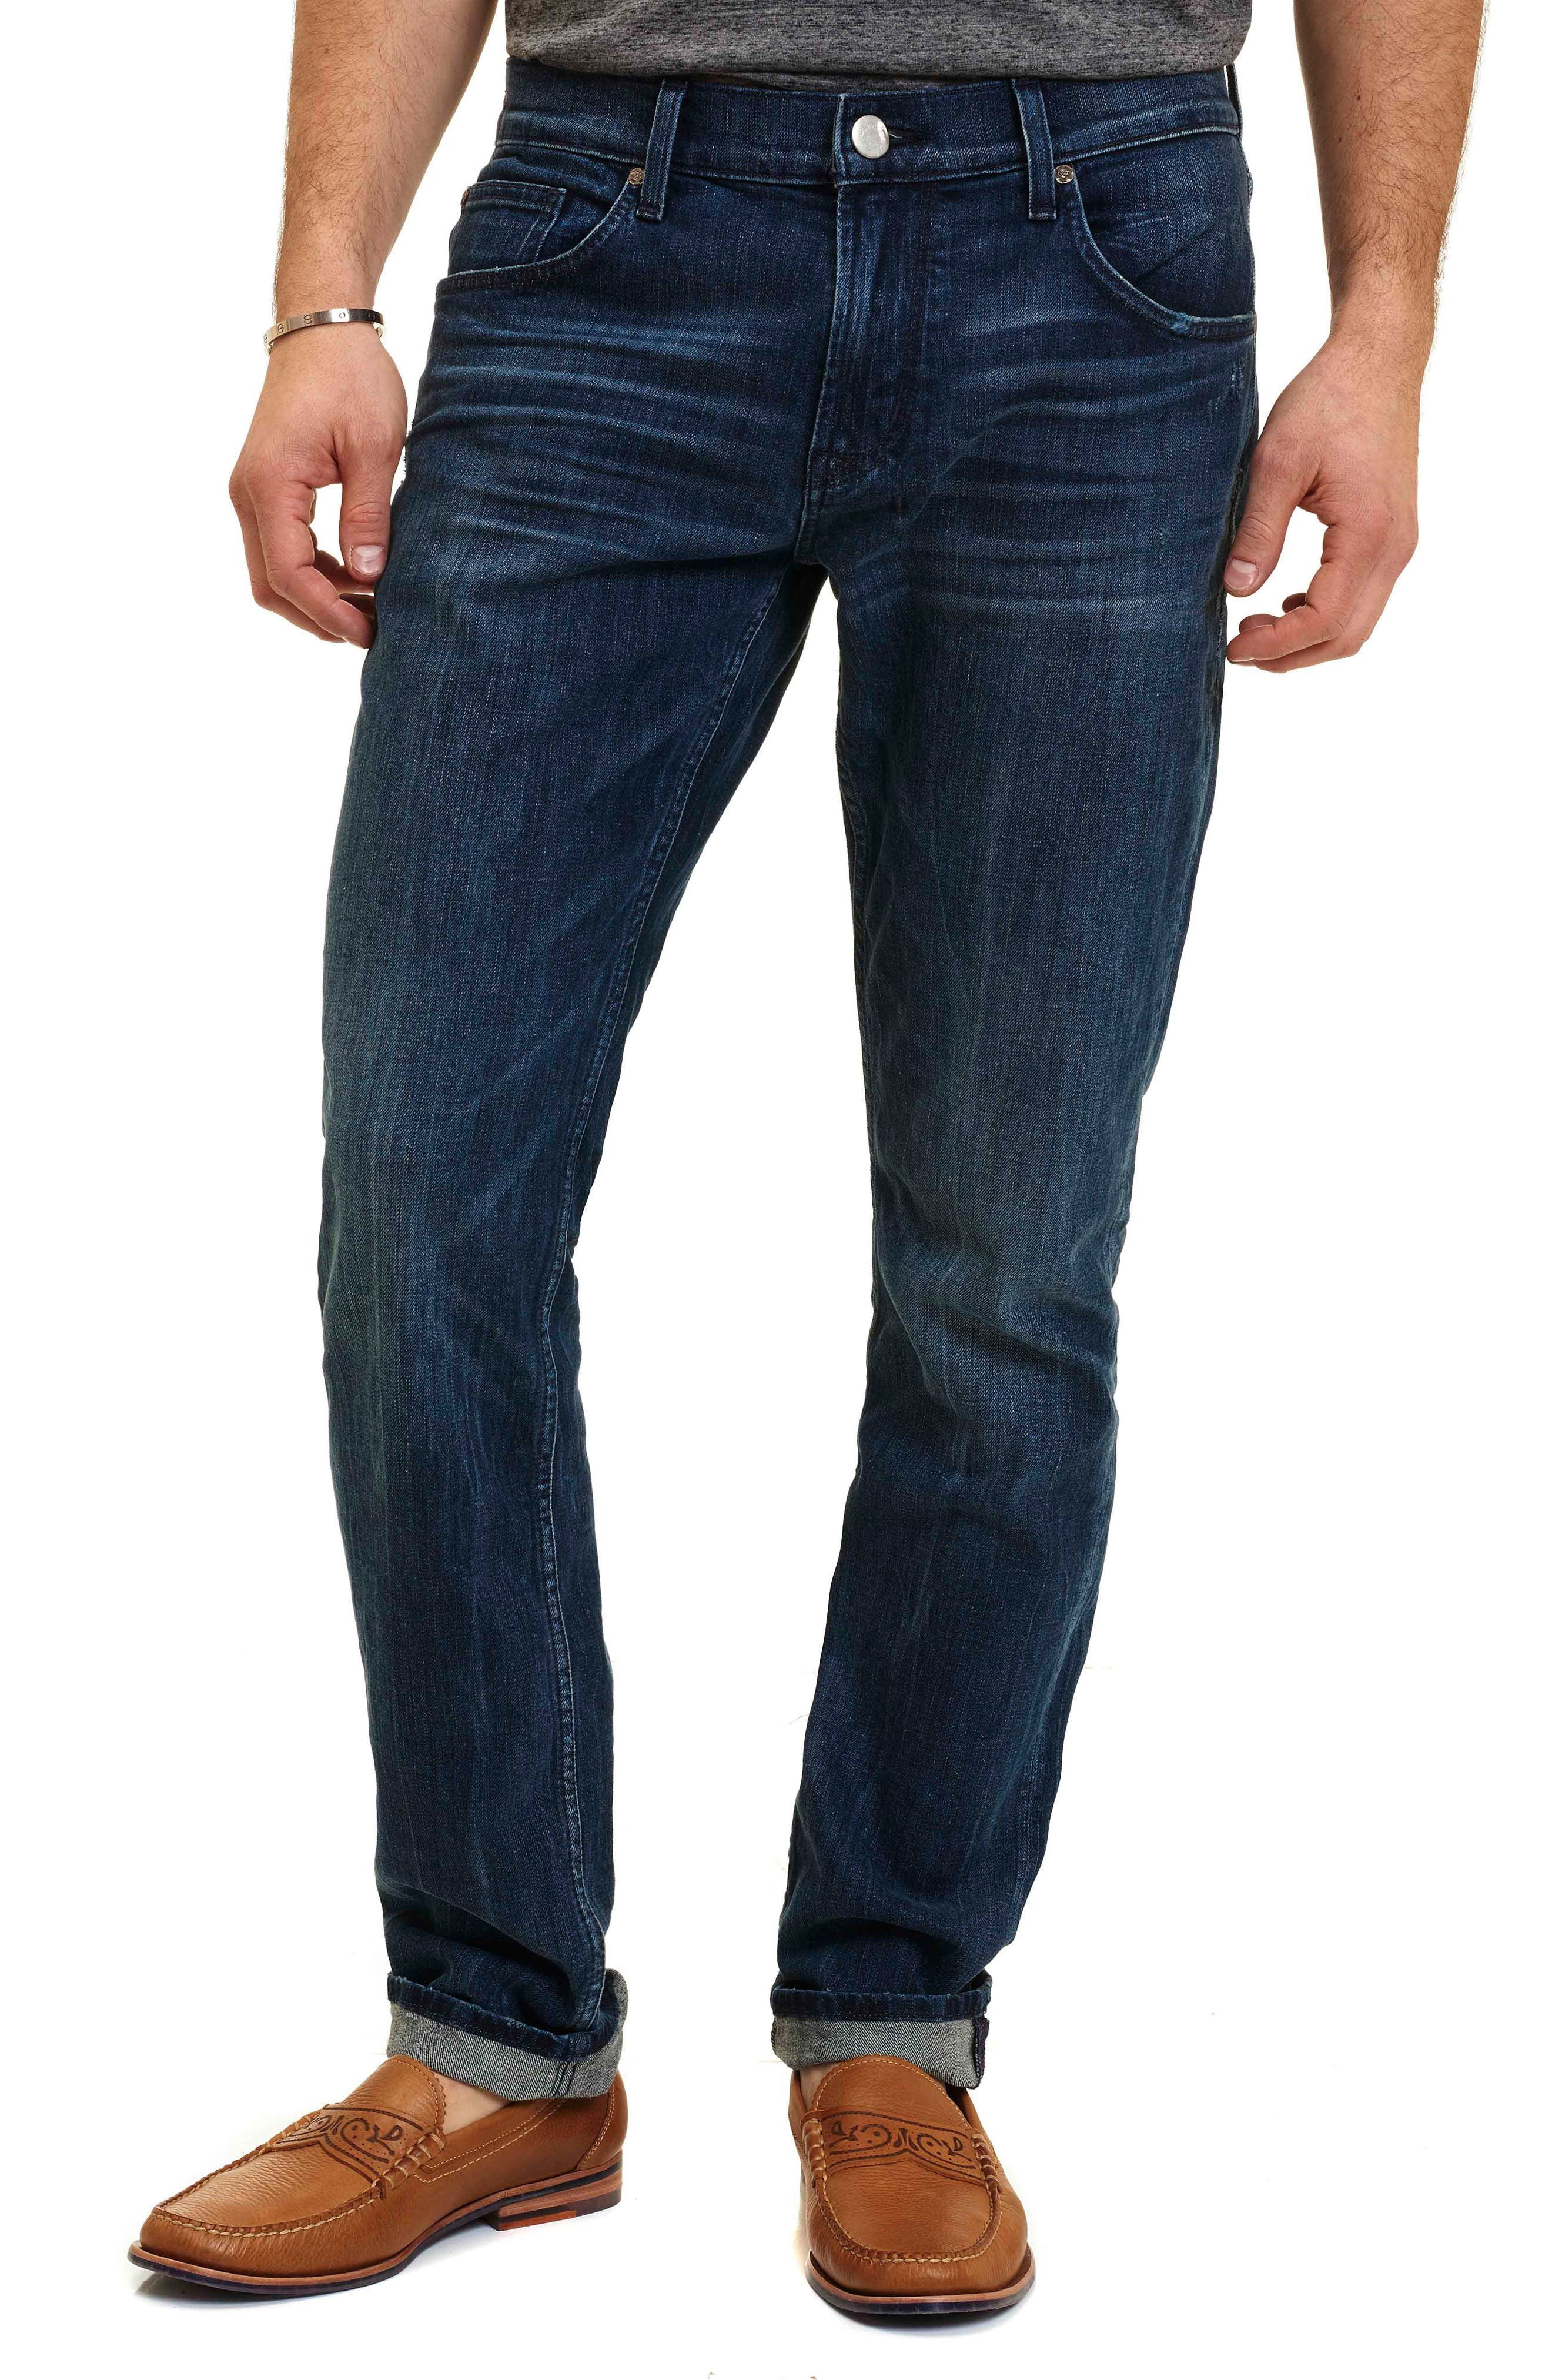 Robert Graham Activate Tailored Fit Jeans (Indigo)